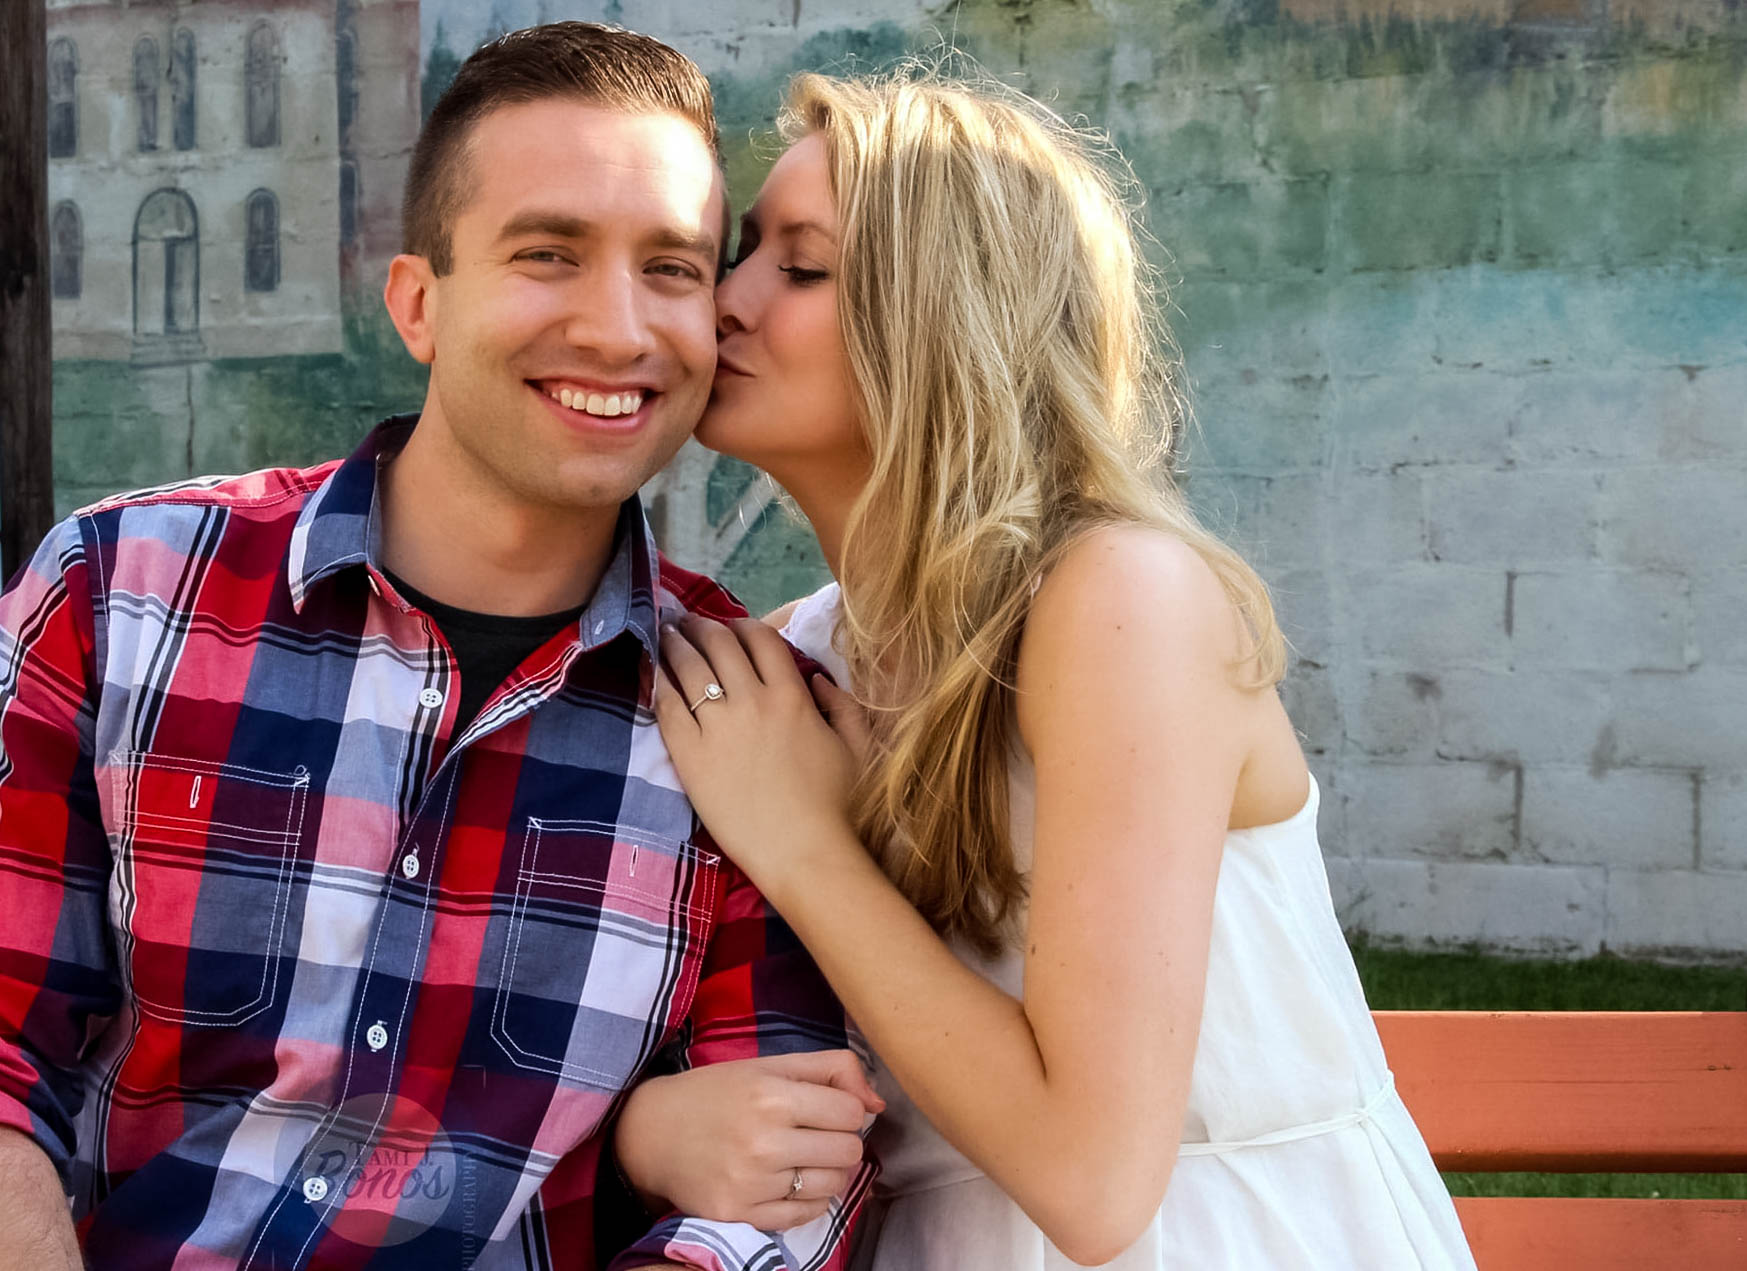 photoshoot of a newly engaged couple on a bench in front of a wall with a painted mural